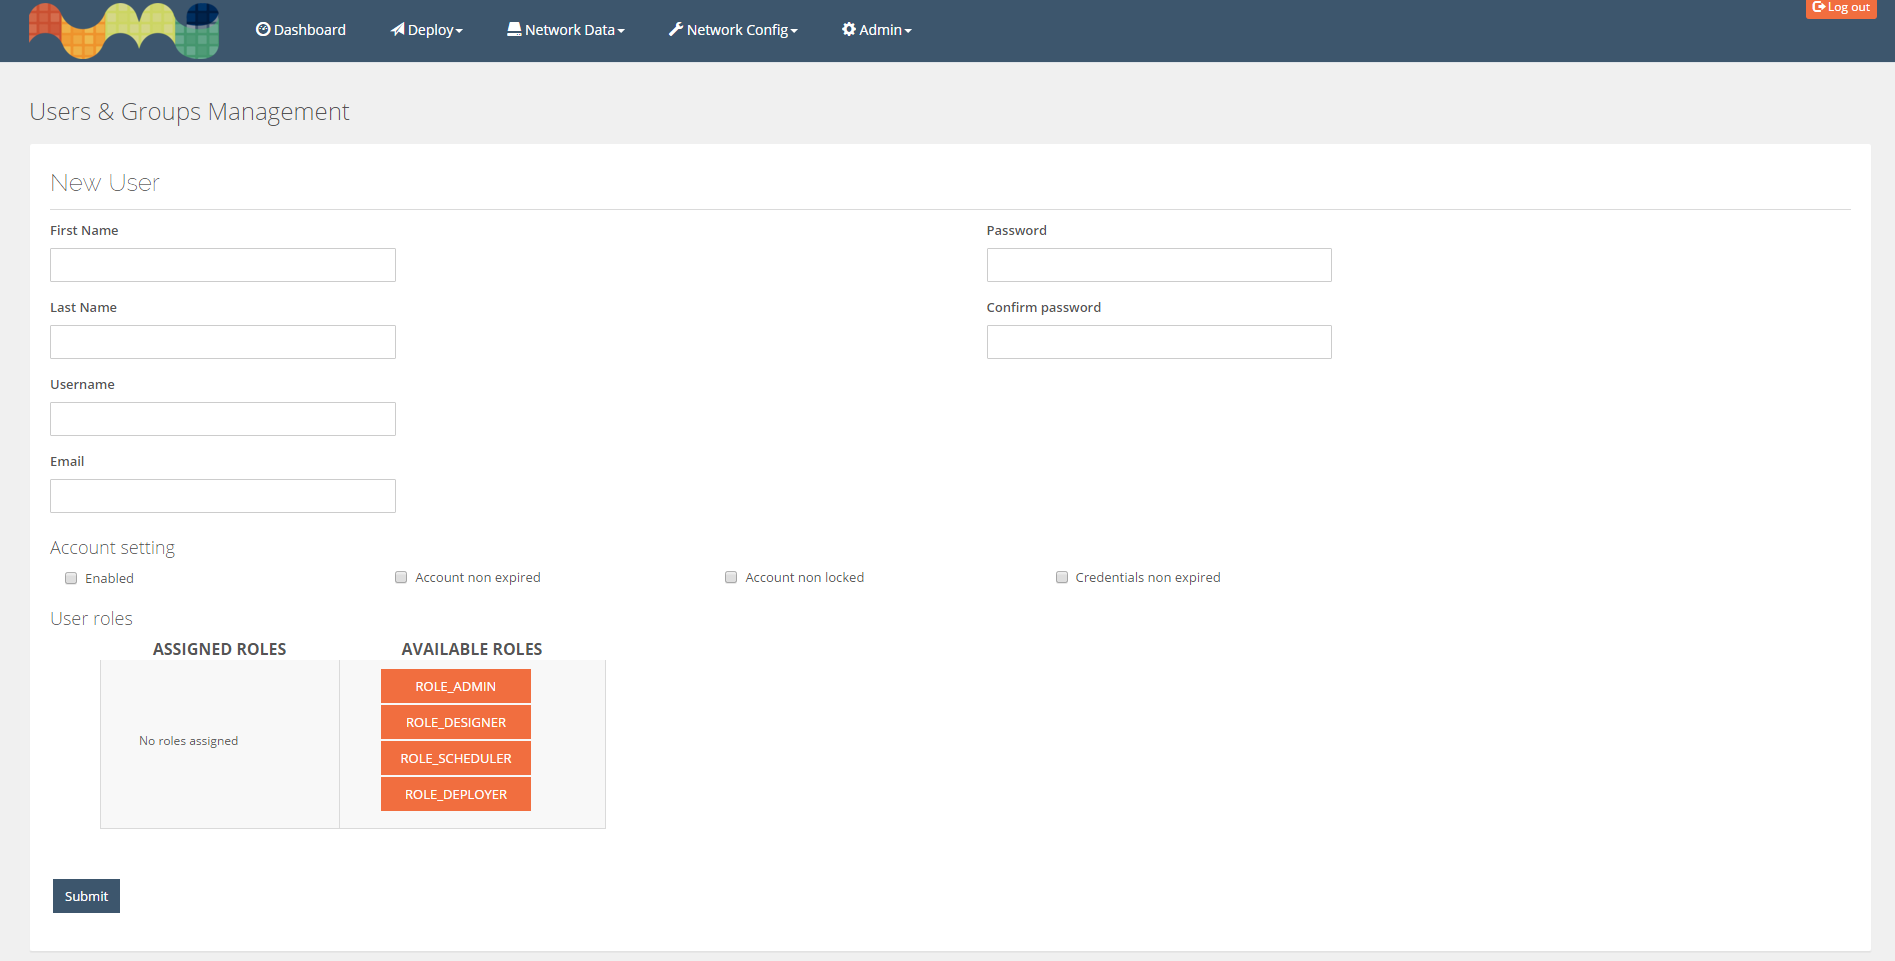 Edit/Insert User page. Ability to modify all user attributes. Drag'n'drop role management.